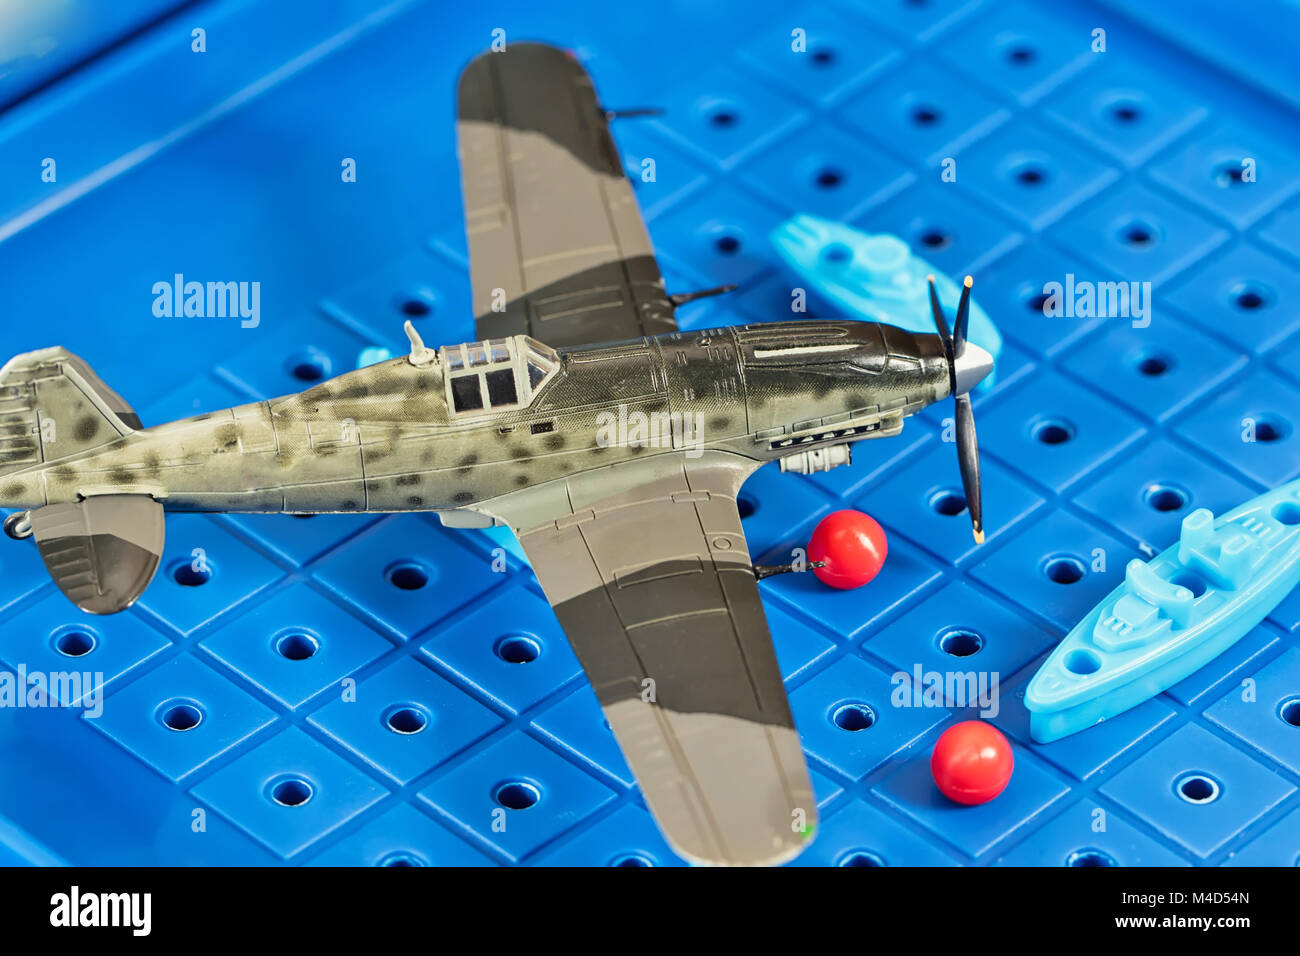 Toy military airplane is attacking toy ships - Stock Image